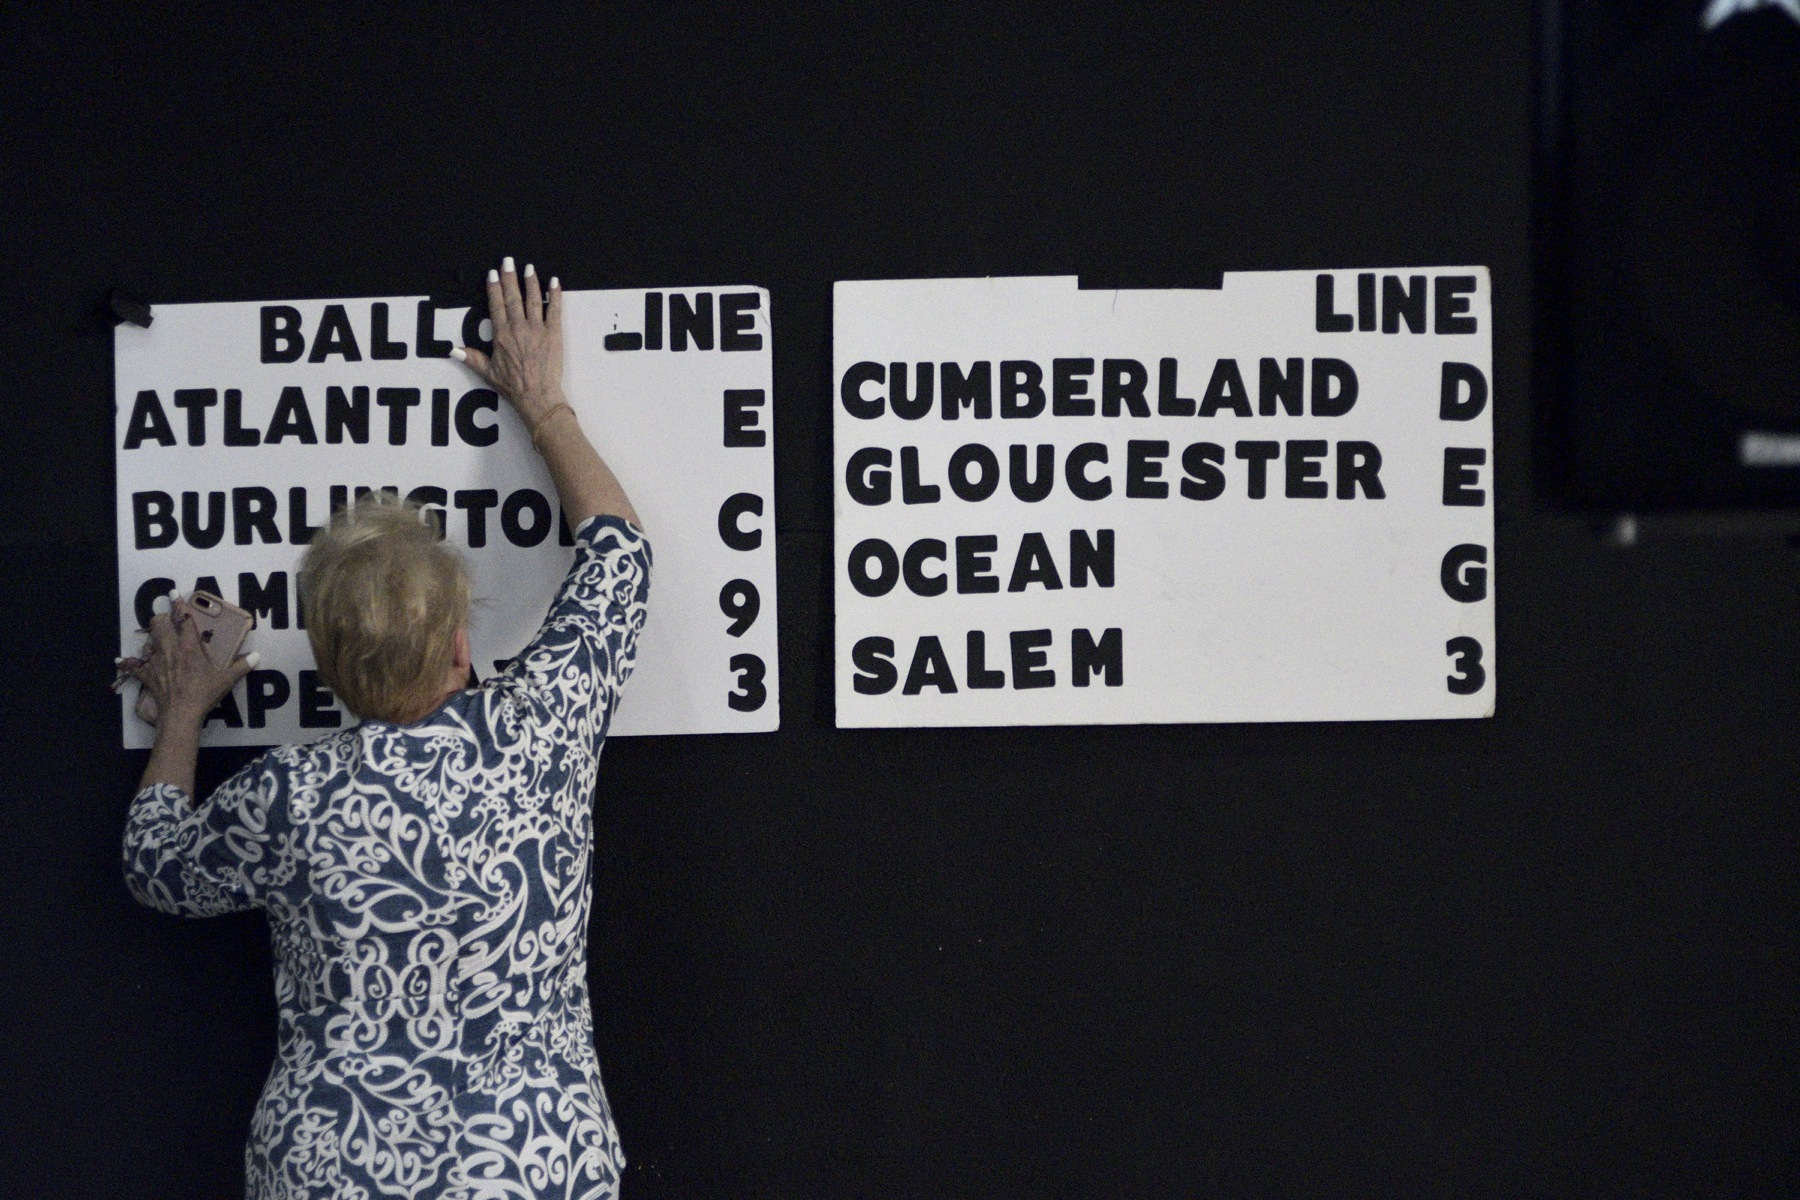 Campaign volunteer Helen Duda mounts a board indicating the candidate's position on the eight different ballots for the upcoming congressional primaries.